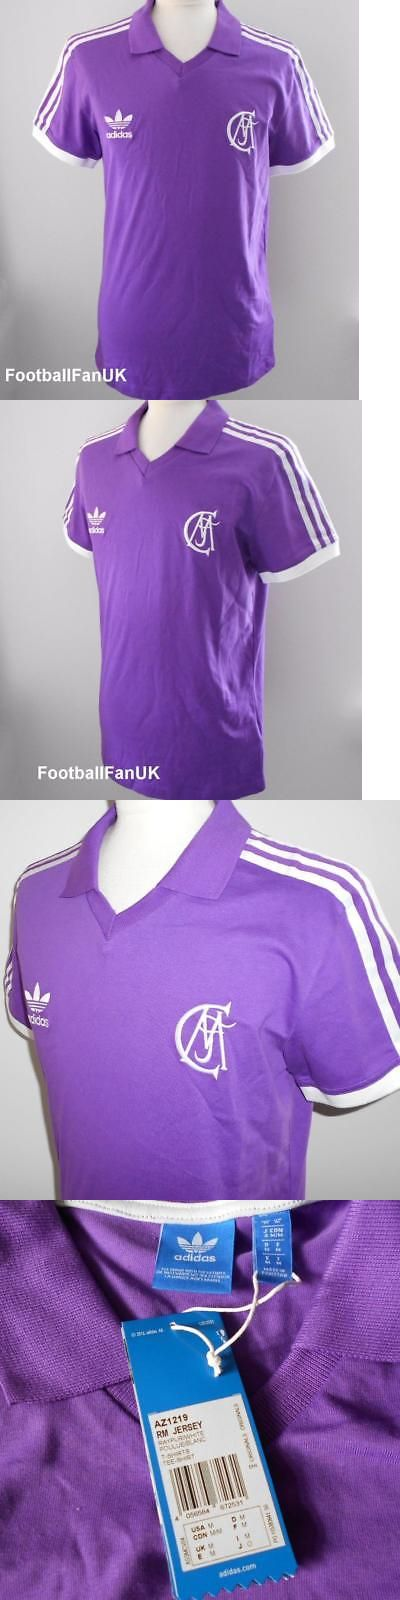 Other Soccer Clothing and Accs 159179: Real Madrid Adidas Originals Retro Purple Away Shirt New M,L Camiseta Bnwt -> BUY IT NOW ONLY: $54.03 on eBay!